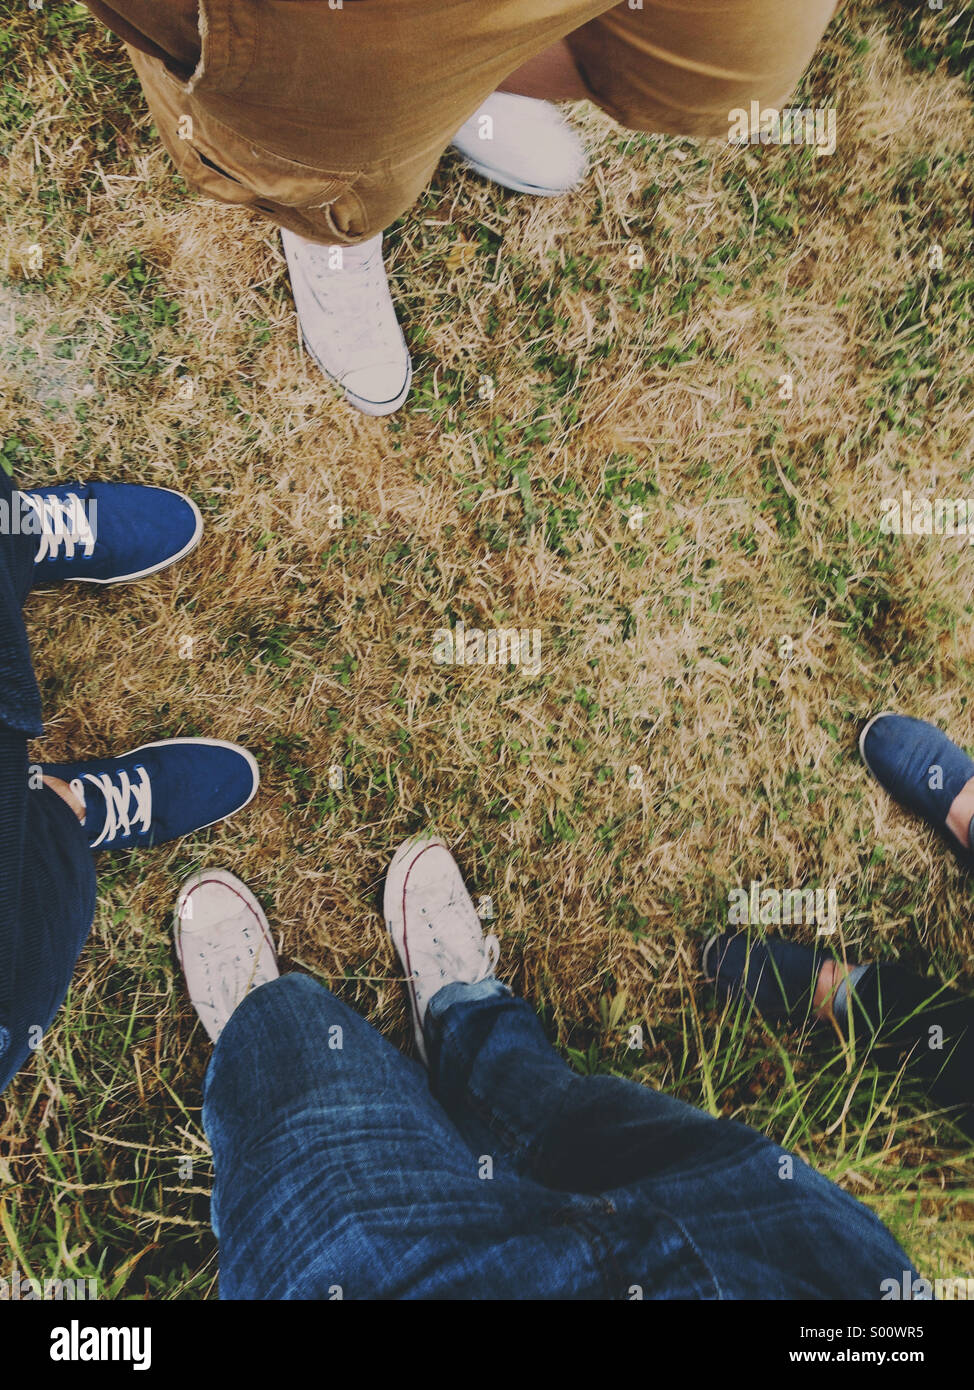 Four pairs of trainers on Grass - Stock Image